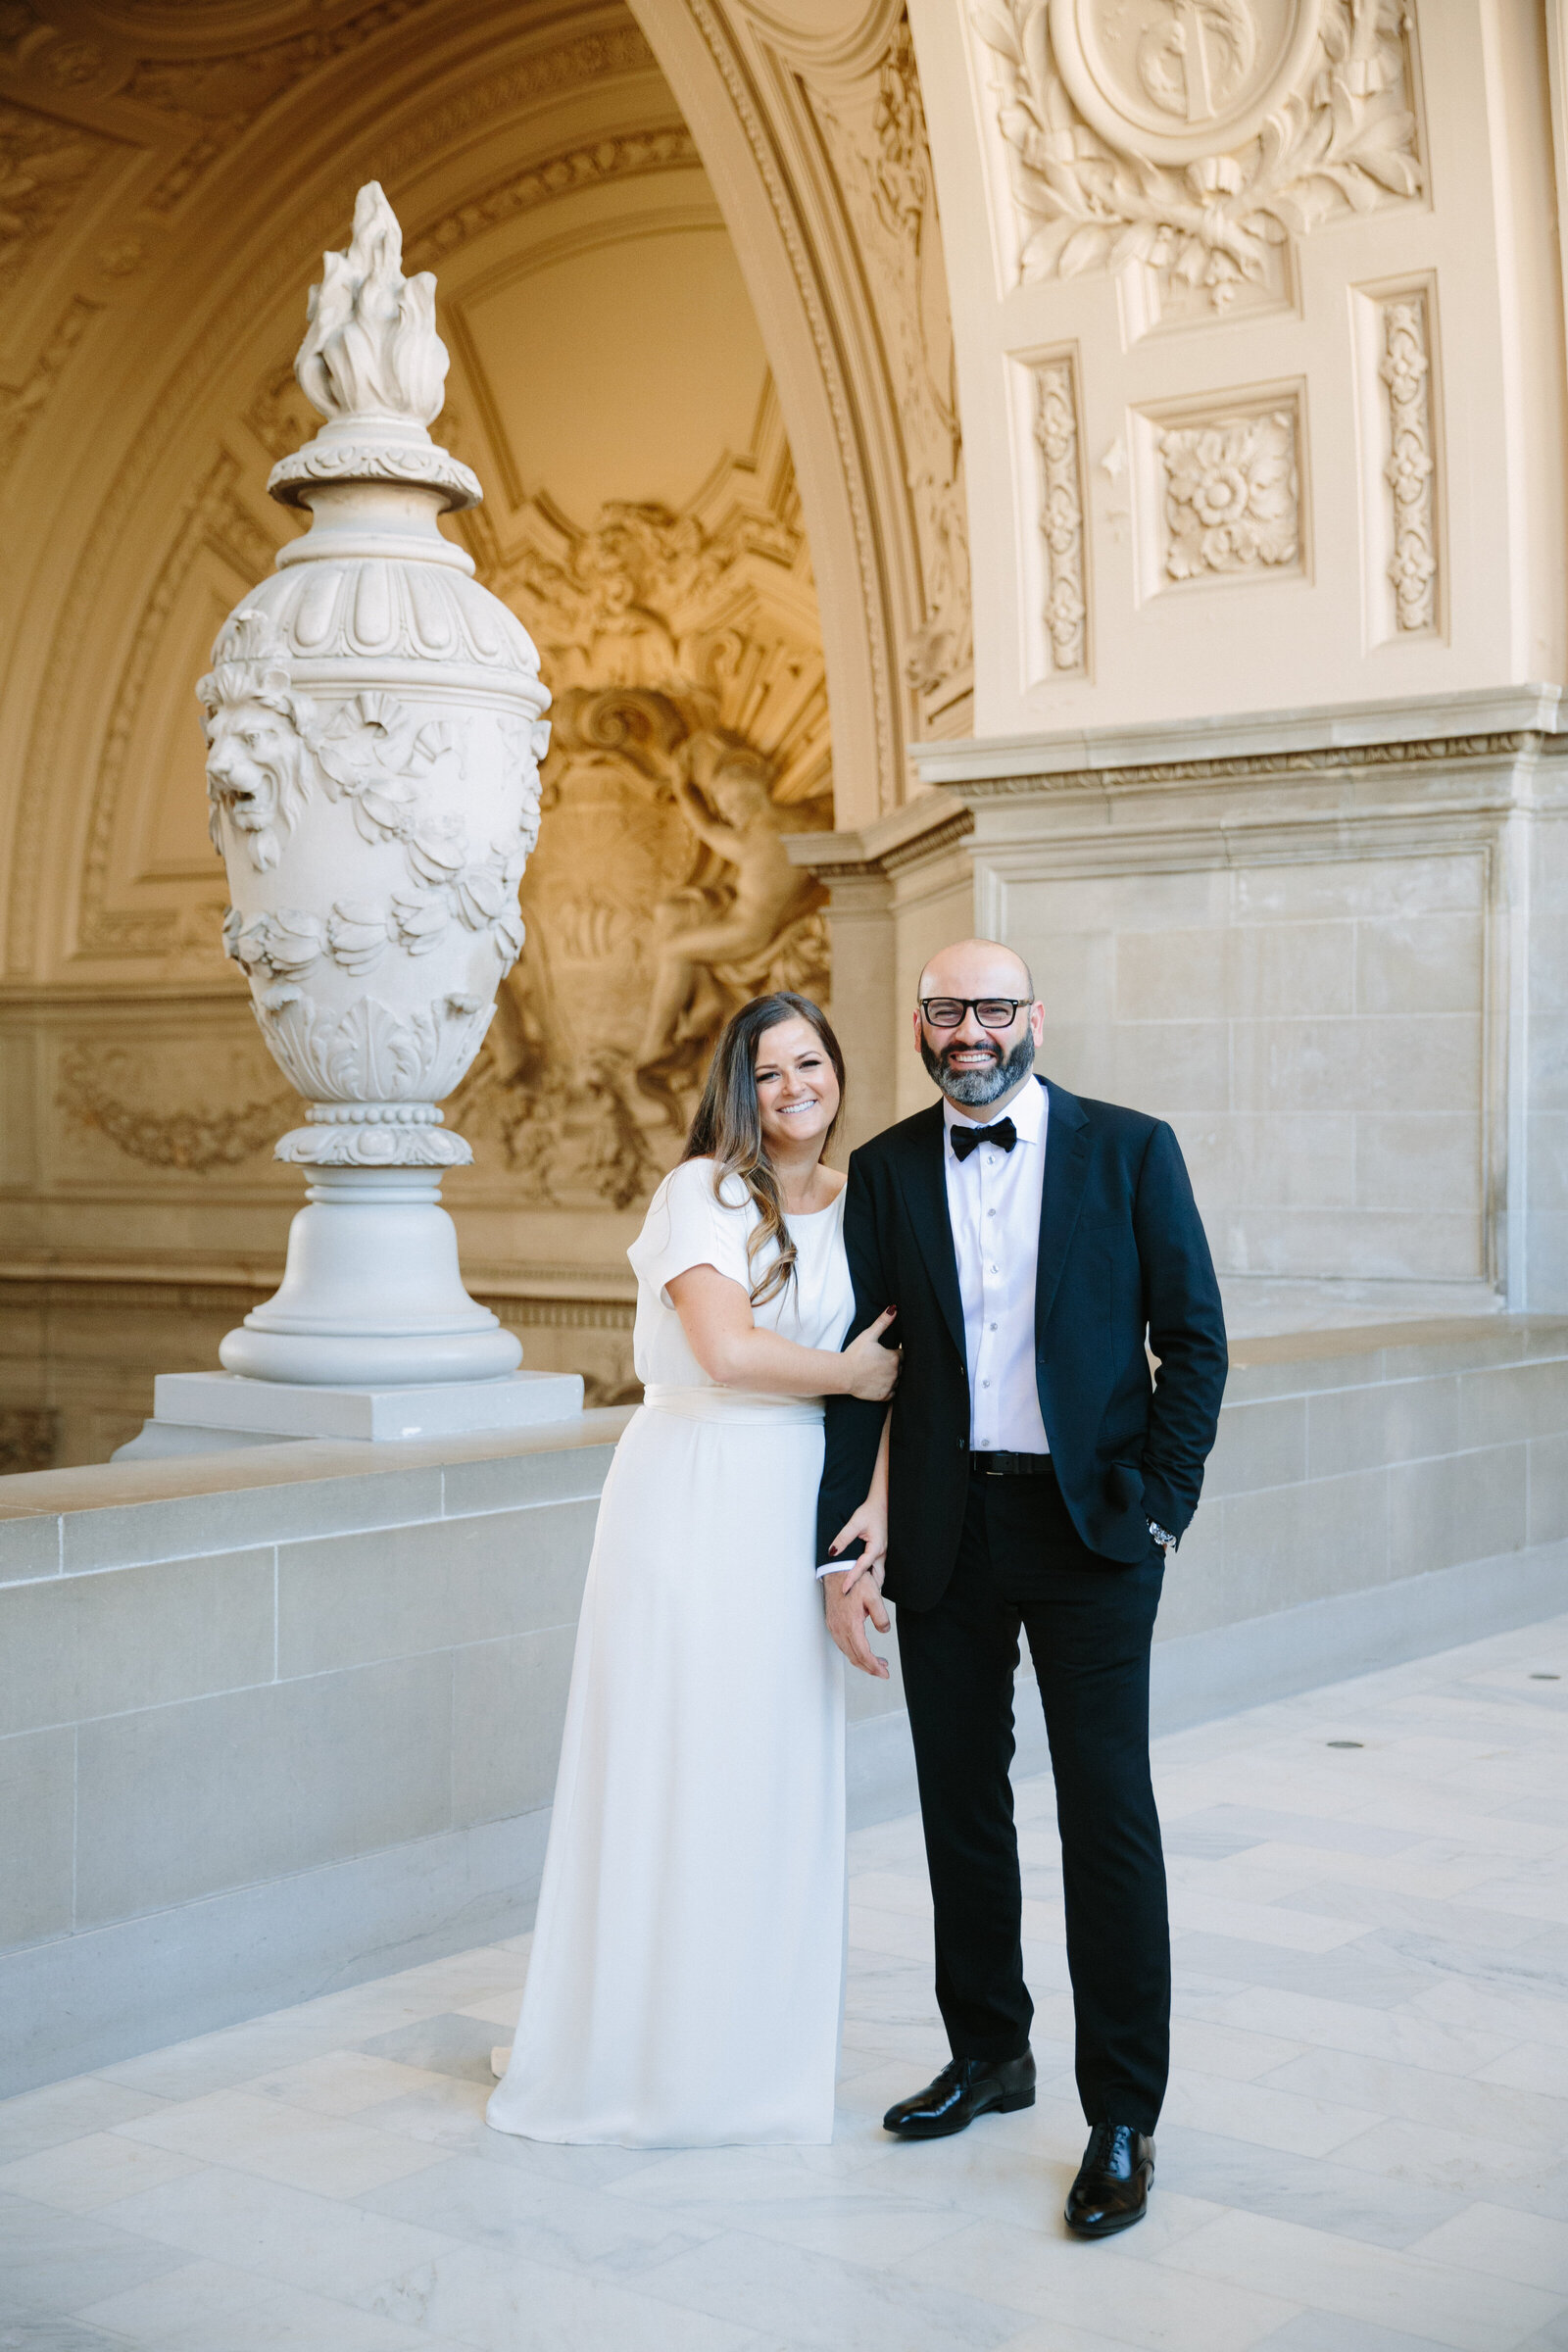 larissa-cleveland-elope-eleopement-intimate-wedding-photographer-san-francisco-napa-carmel-107